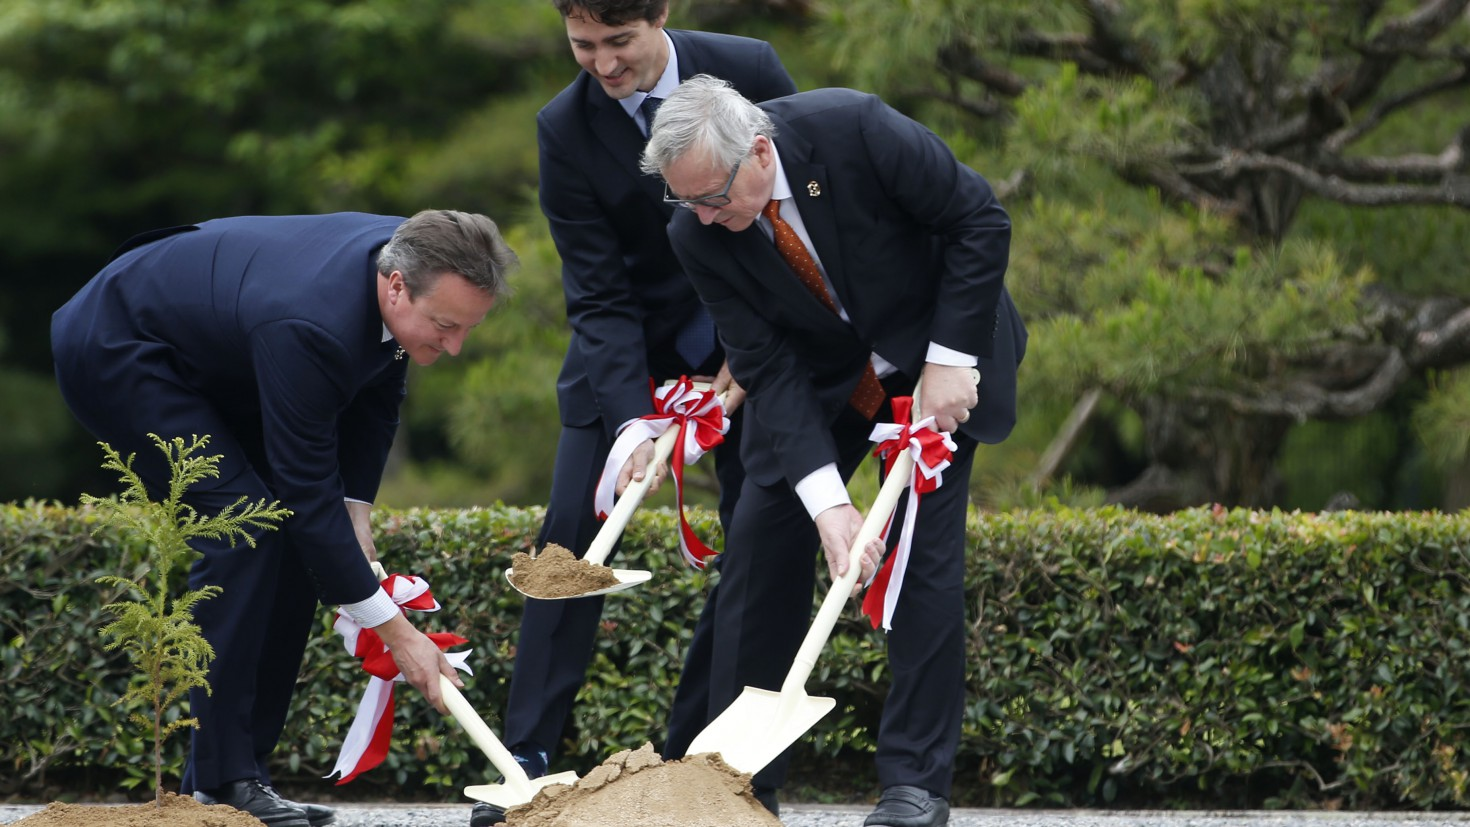 British prime minister david cameron planting a tree together with his Luxemburg counterpart and the president of the European Commission at the G7 summit in Japan. Will they continue building climate policies together? © European Union , 2016 / Photo: Ken Shimizu